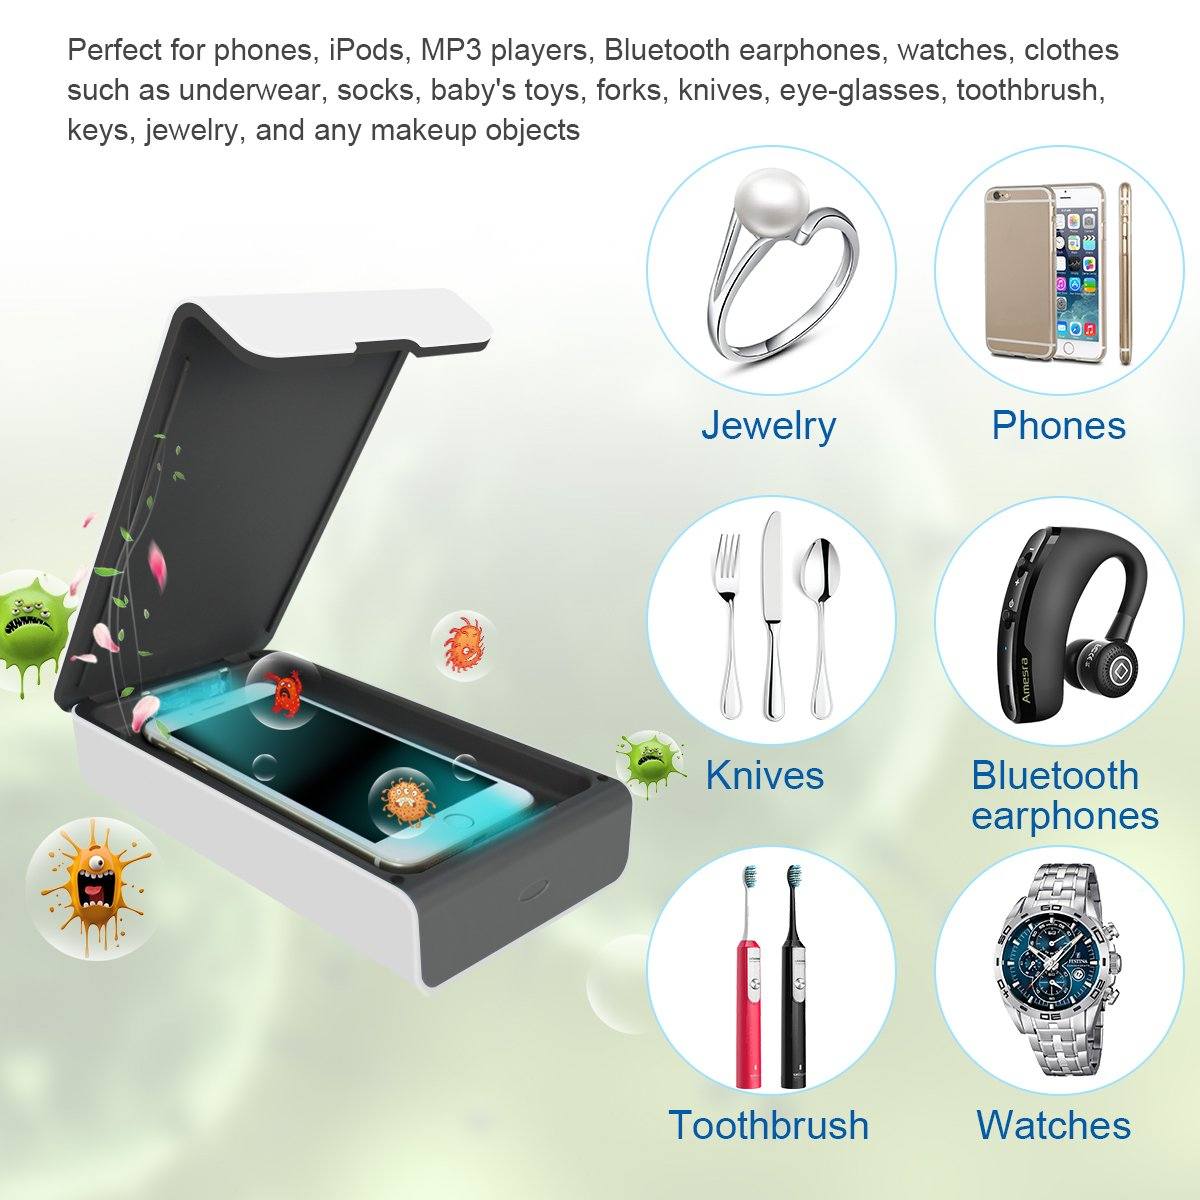 Multi-Use UV Light Disinfection for Smartphone iPhone 6 6s 7s Plus Toothbrush Watches Jewelry White Aromatherapy Hub UV Sterilizer Cleaner Case Portable UV Cell Phone Sanitizer with USB Charger